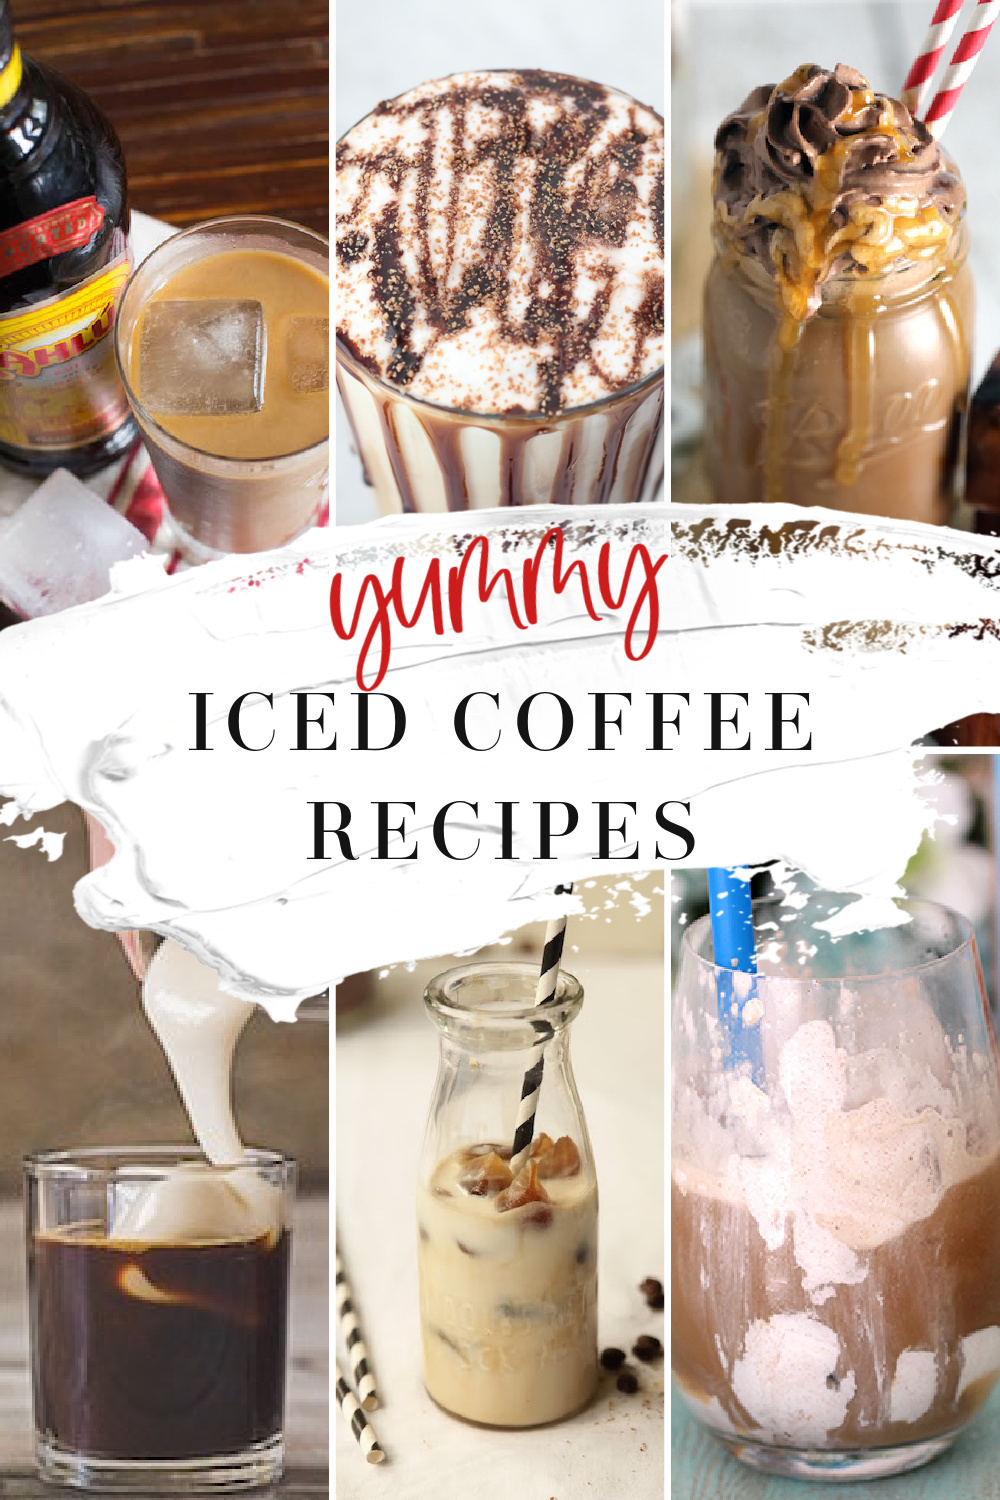 The Best Iced Coffee Recipes You Have to Try! via @lydioutloud